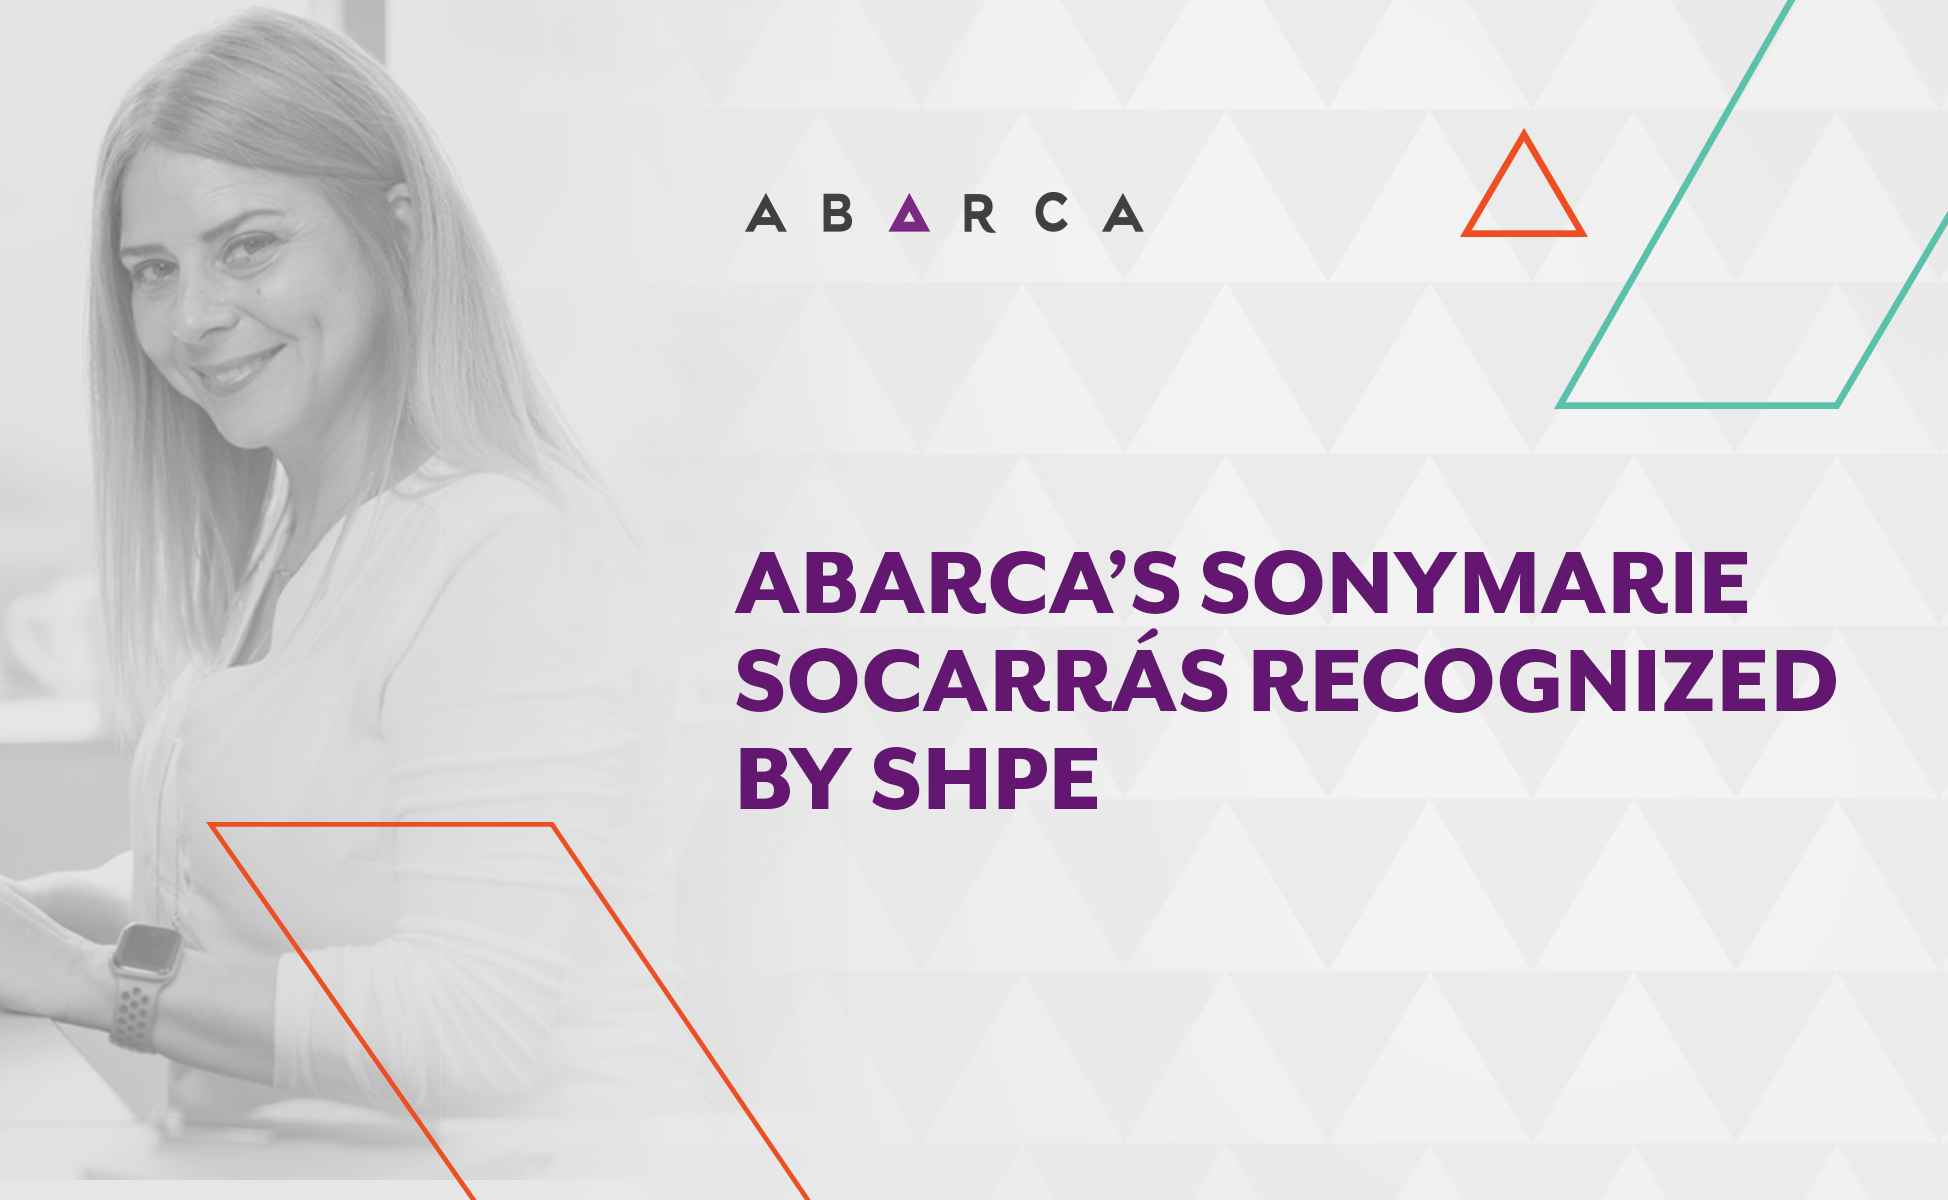 Abarca Health's Sonymarie Socarras recognized by SHPE